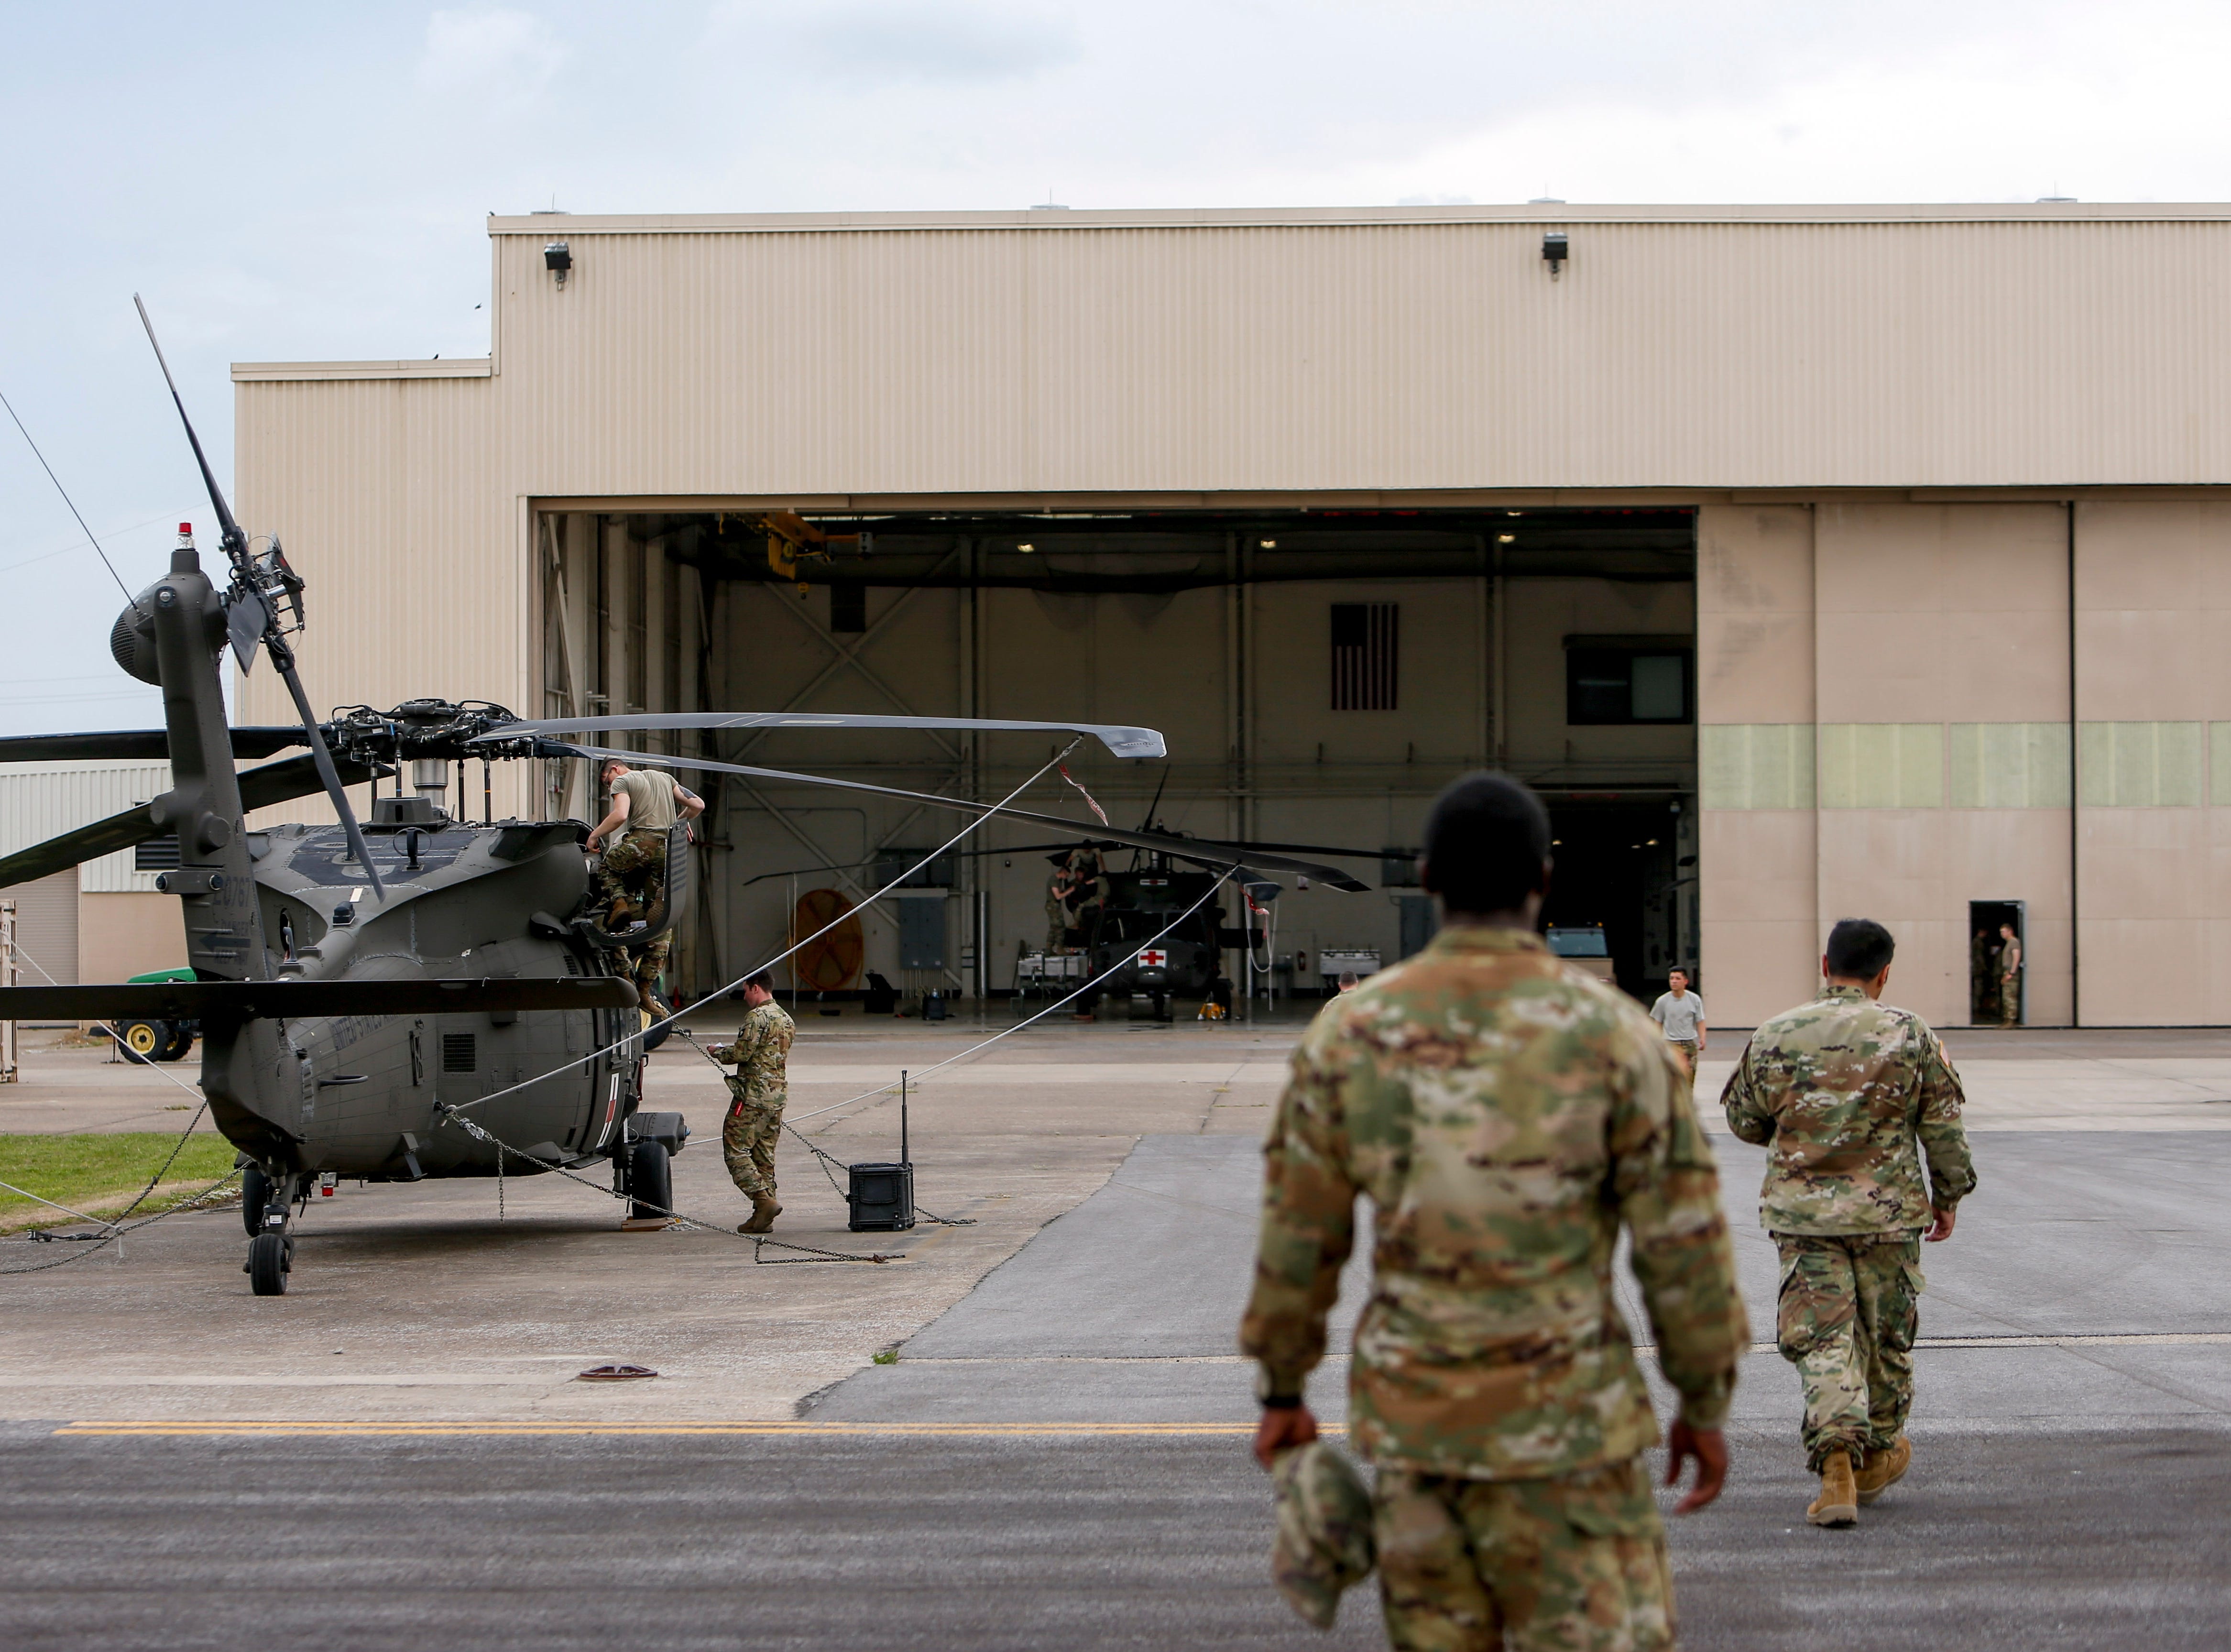 Sgt. Emmanuel Bynum, center, and Sgt. Armando Yanez, right, walk back to Hangar 3 at Campbell Army Airfield in Fort Campbell on Wednesday, May 1, 2019.